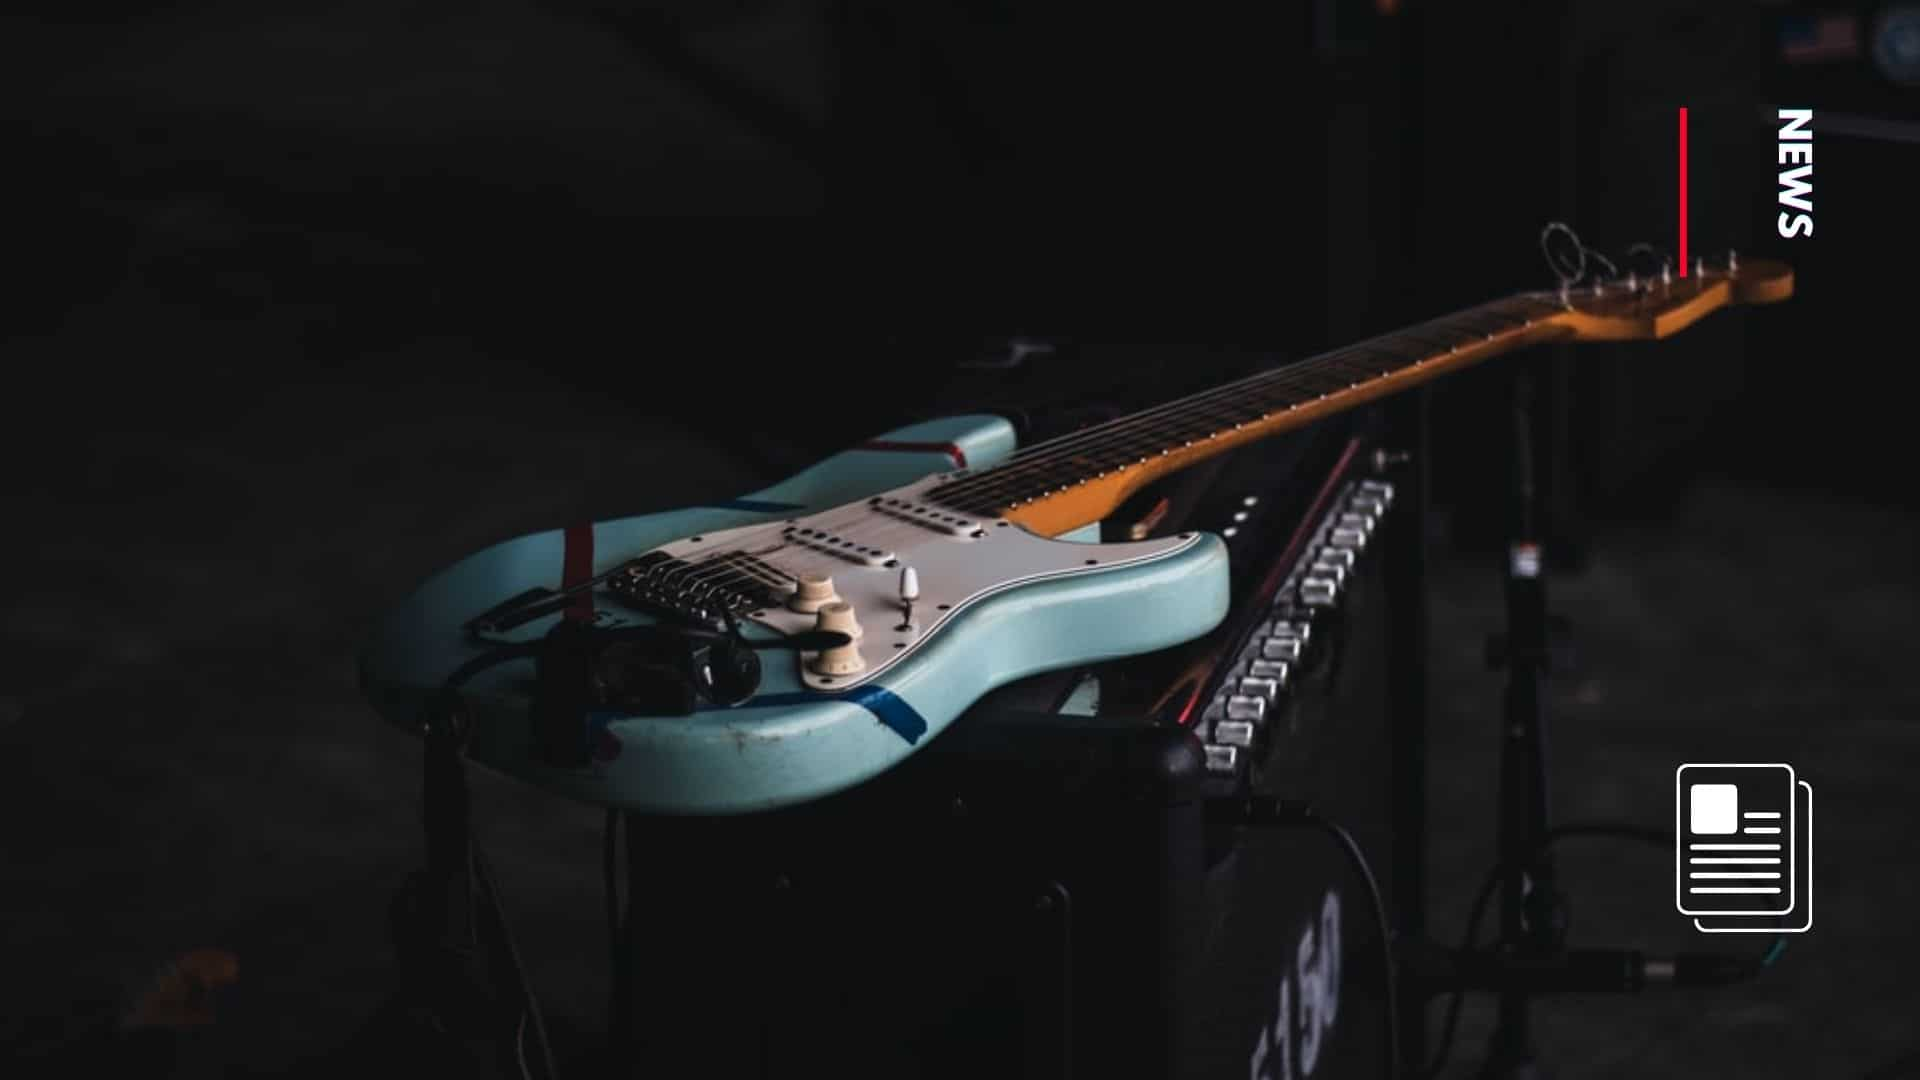 Fender's inappropriate Instagram post removal